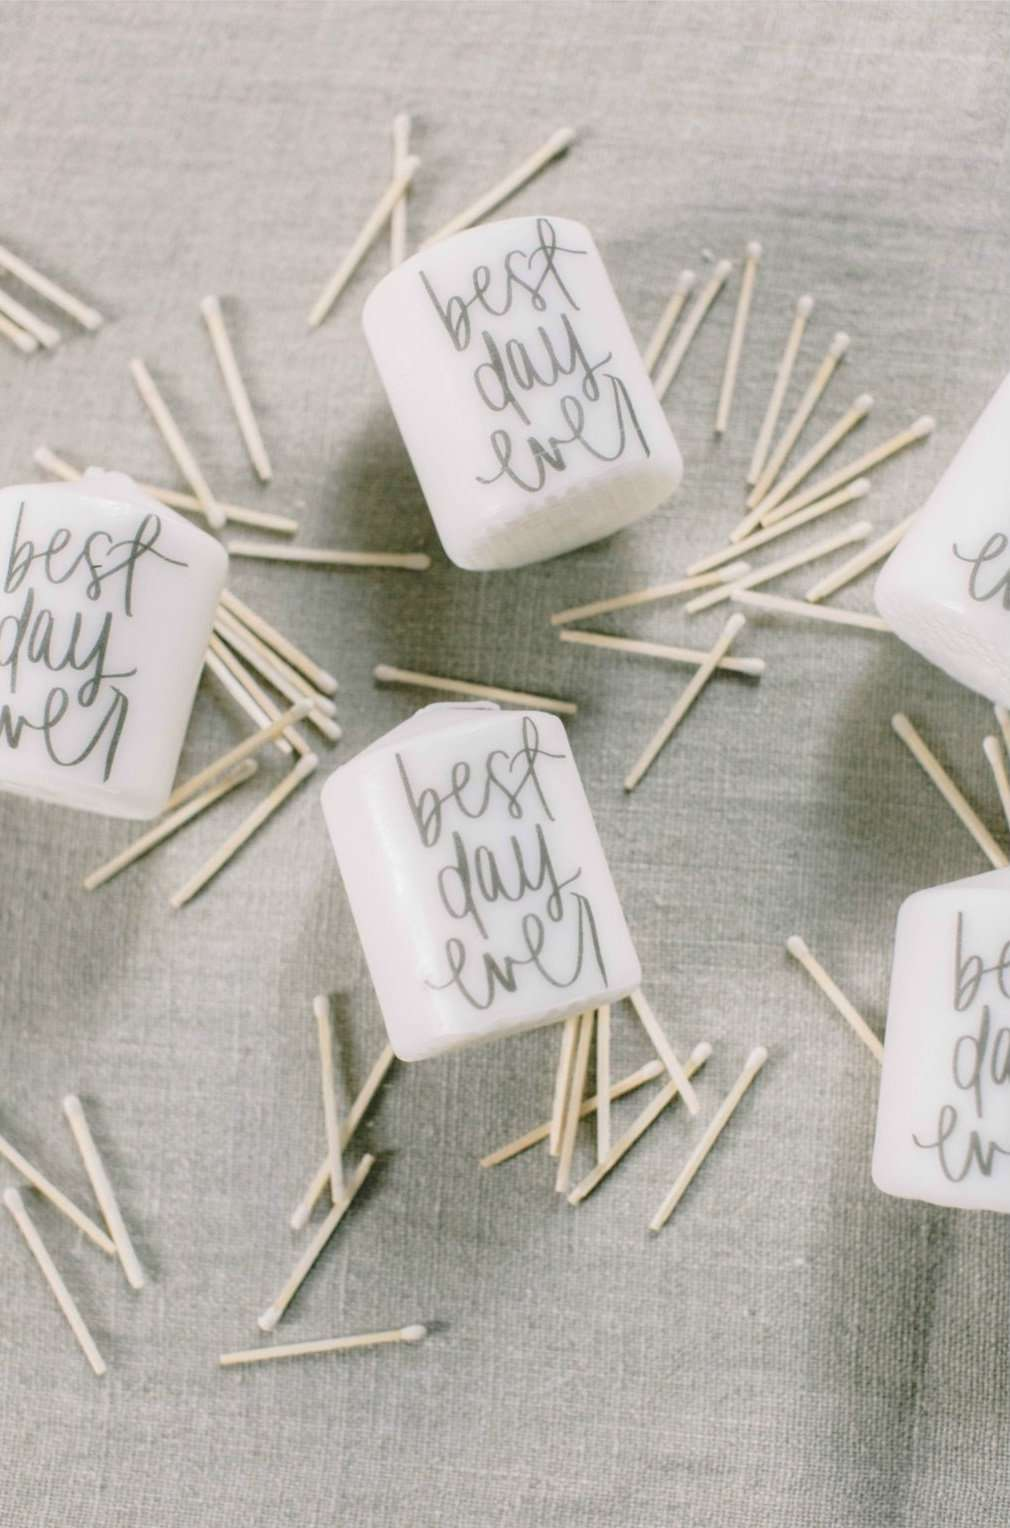 Mini white candles with cursive writing